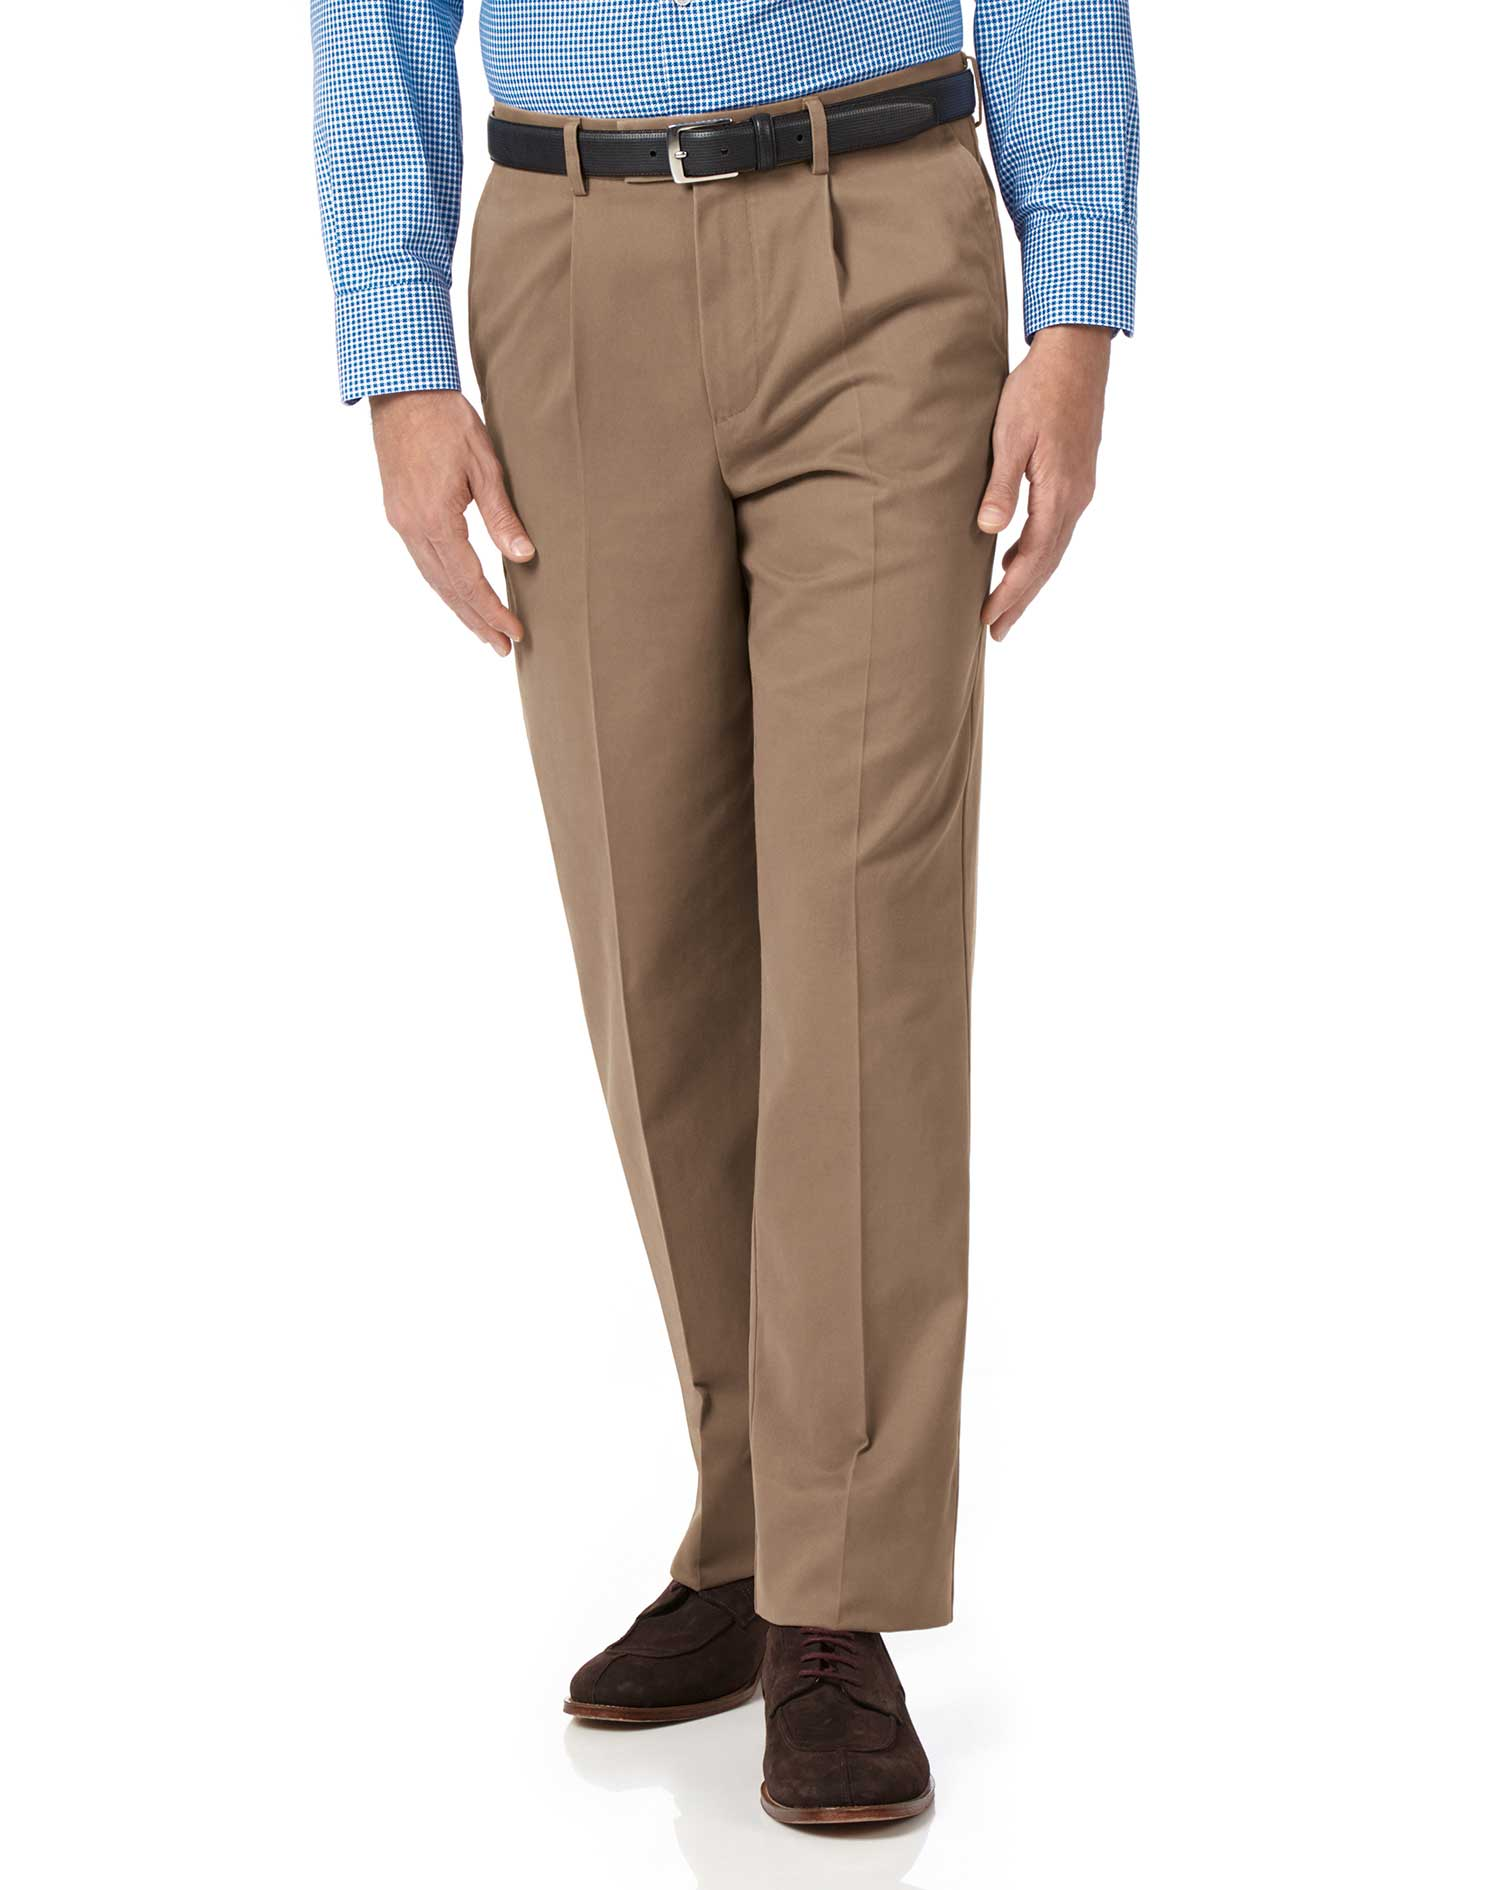 Tan Classic Fit Single Pleat Non-Iron Cotton Chino Trousers Size W42 L32 by Charles Tyrwhitt